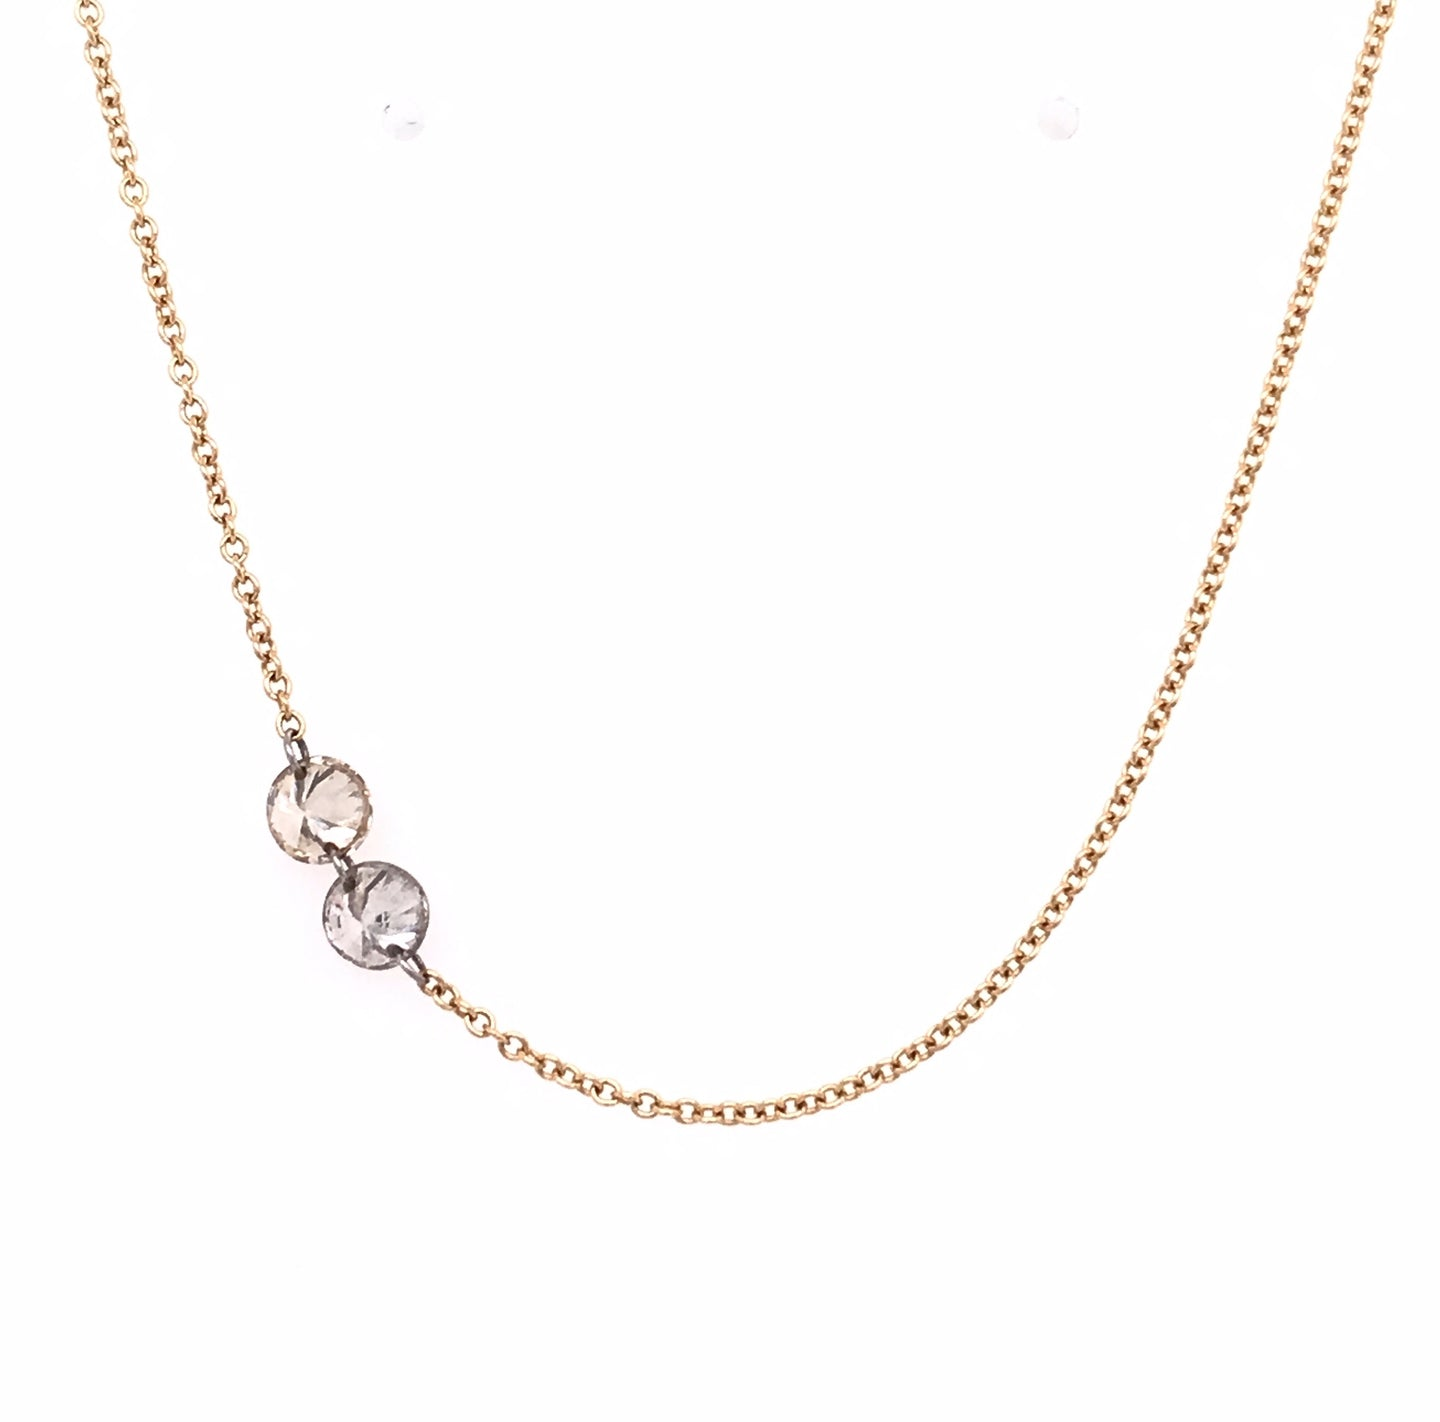 Inverted Free Set Diamond Necklace